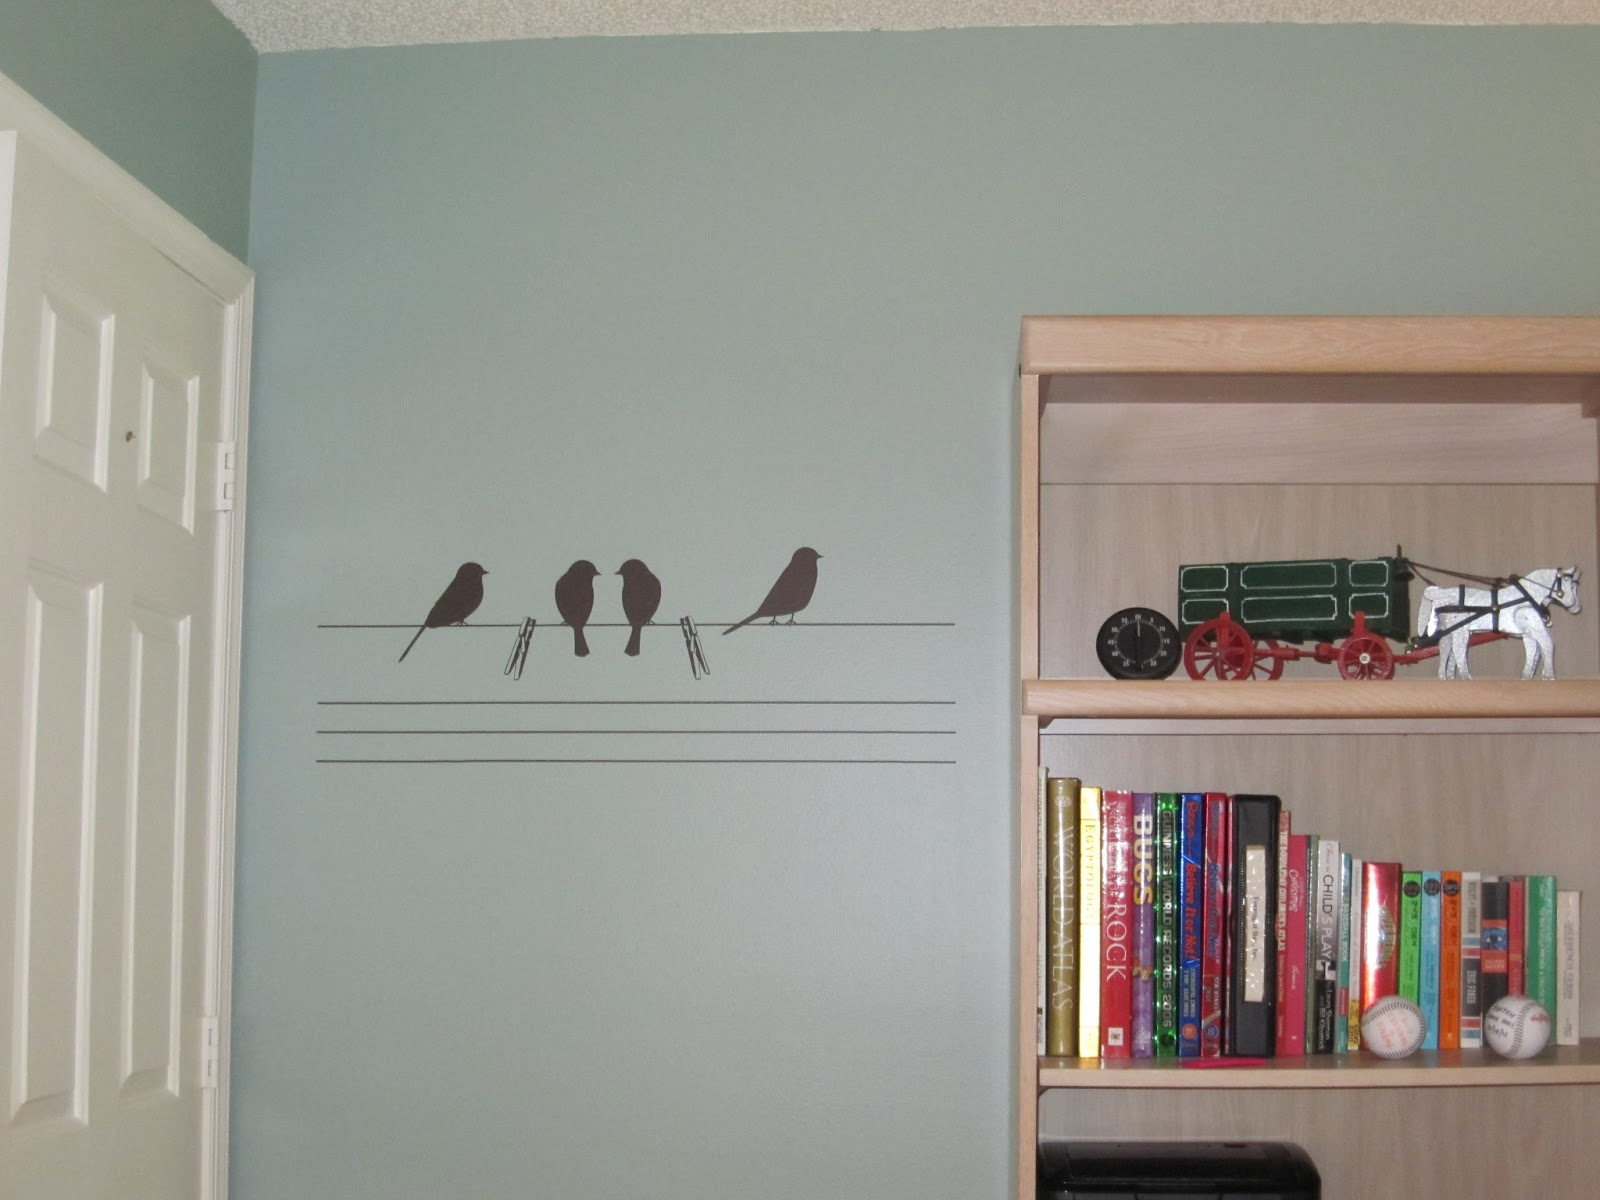 Wall Decals Dezign With A Z : Susan heim on parenting redecorate with wall decals from